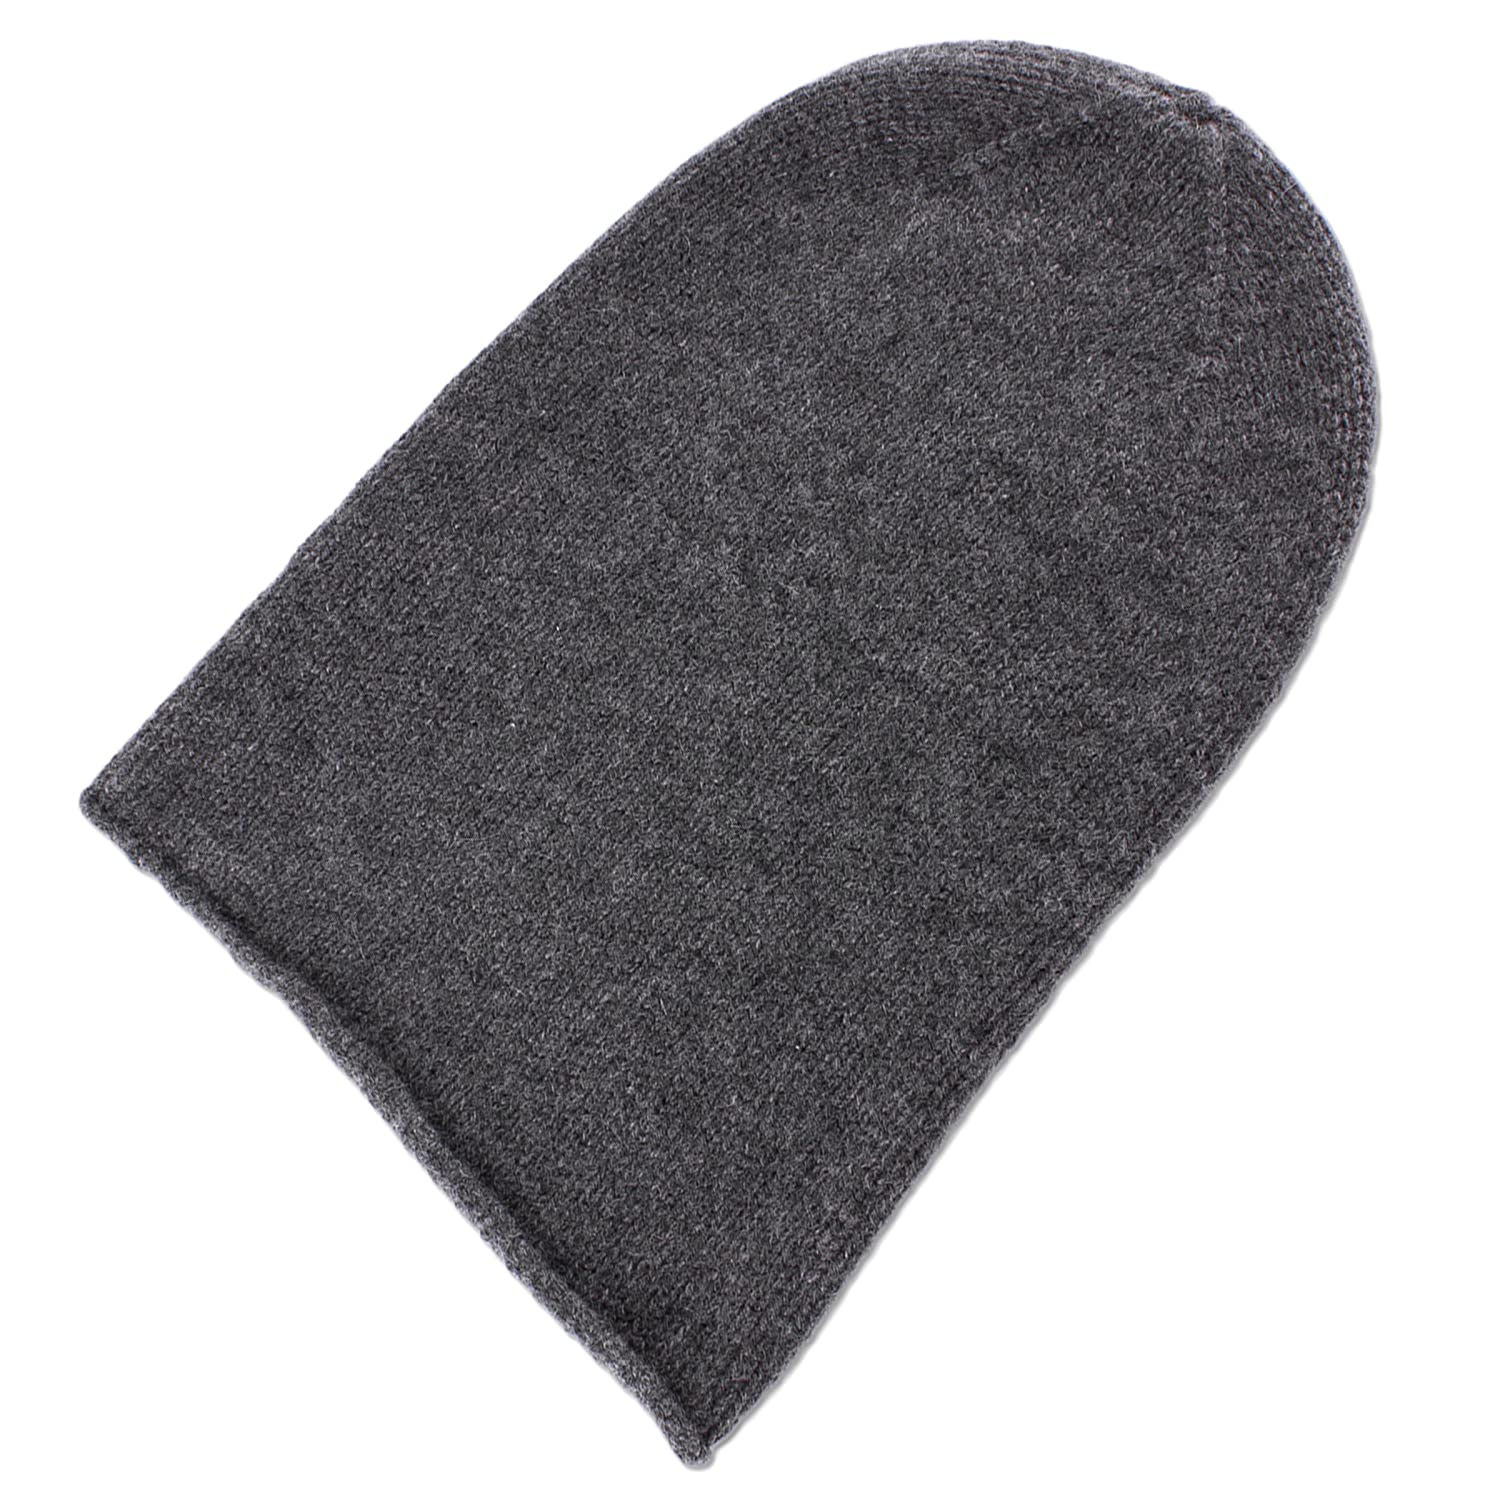 Love Cashmere Mens 100% Cashmere Beanie Hat - Dark Gray - Hand Made in  Scotland RRP  120 at Amazon Men s Clothing store  307e838f7fb